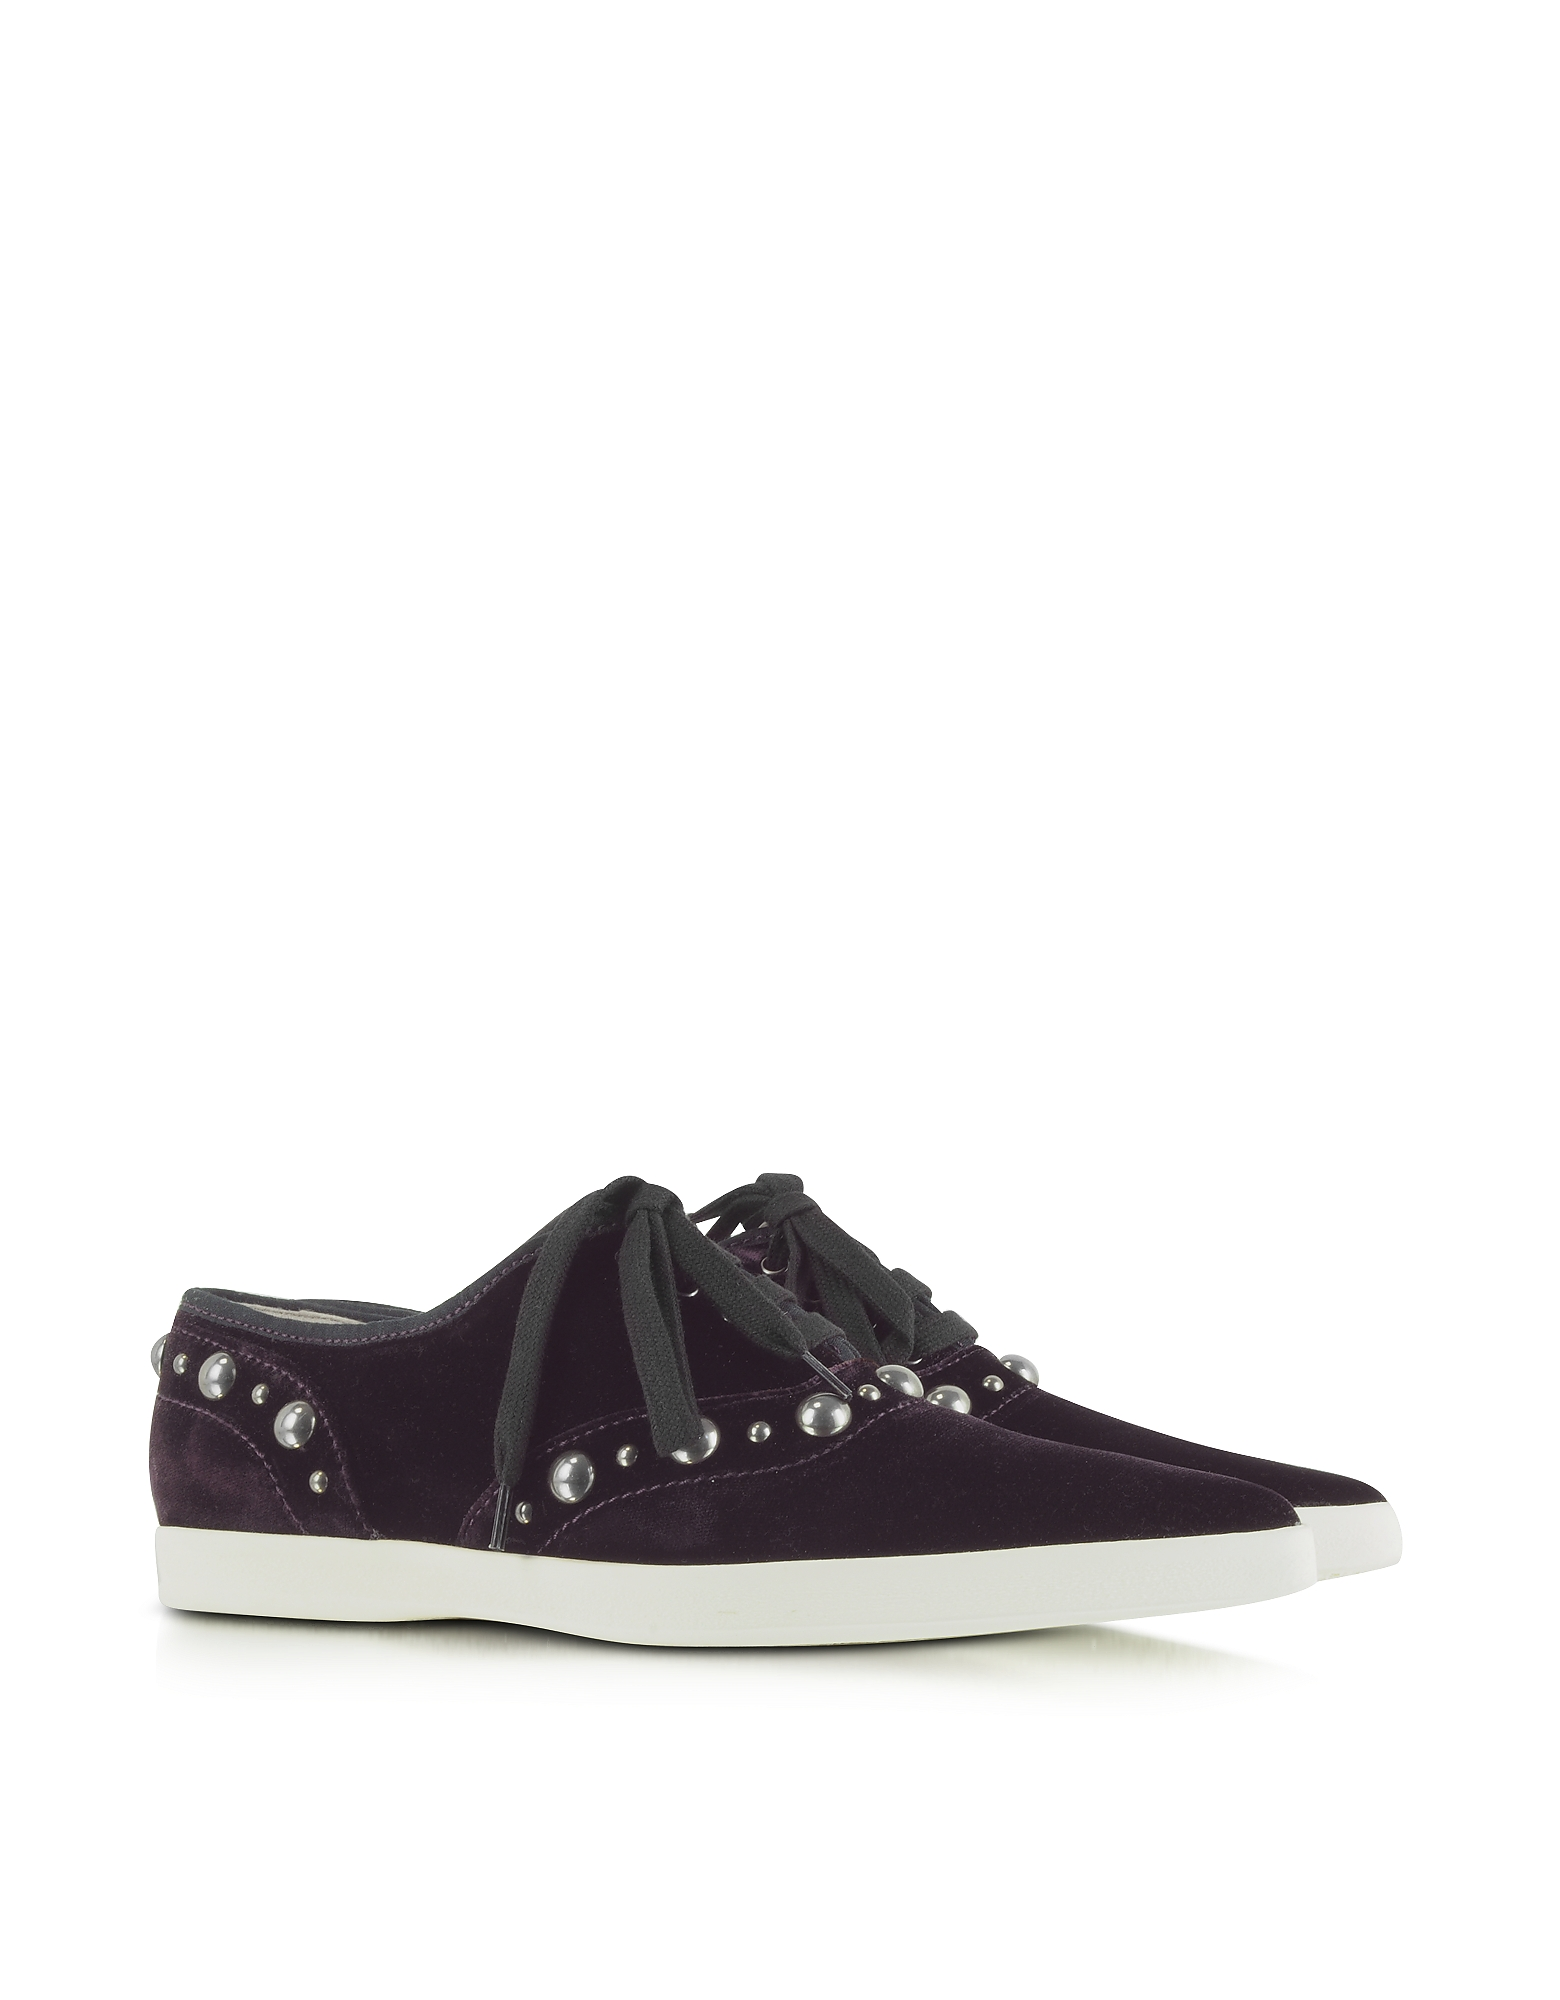 Marc Jacobs Shoes, Purple Pointed Toe Lace Up Velvet Sneaker